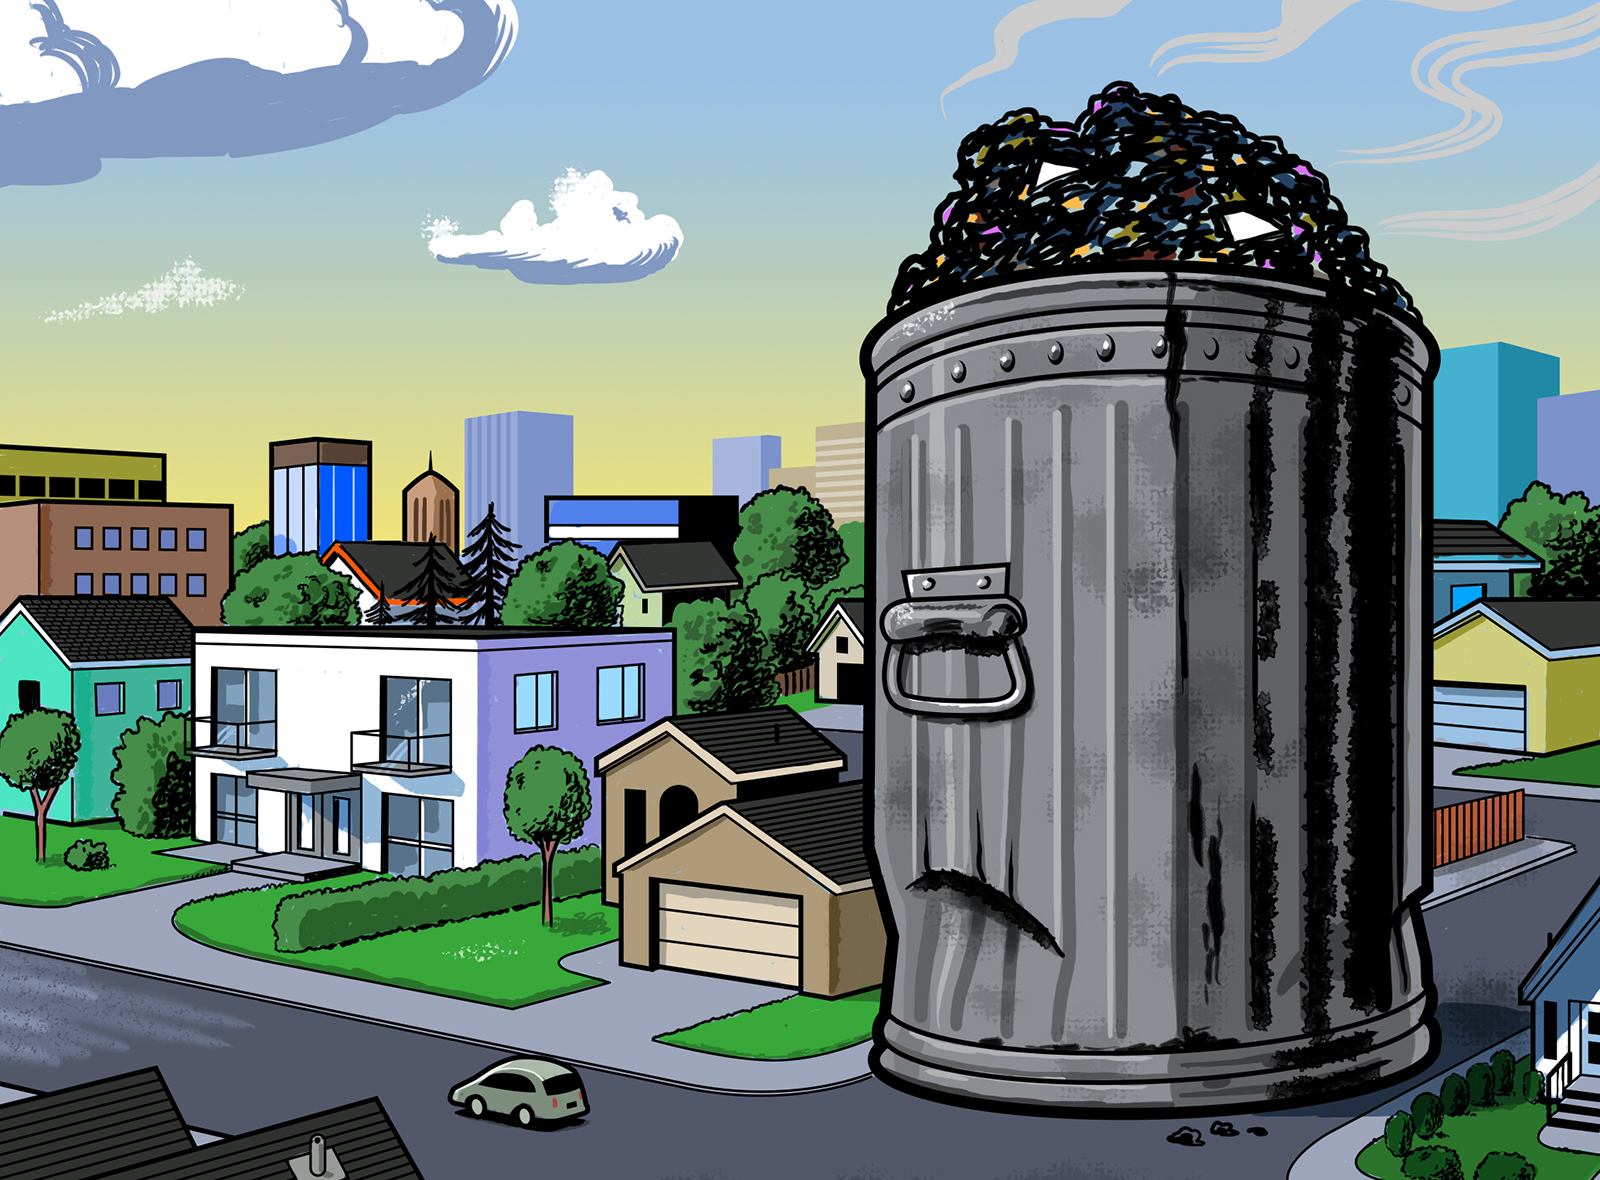 Trash can illustration by Guy Parsons